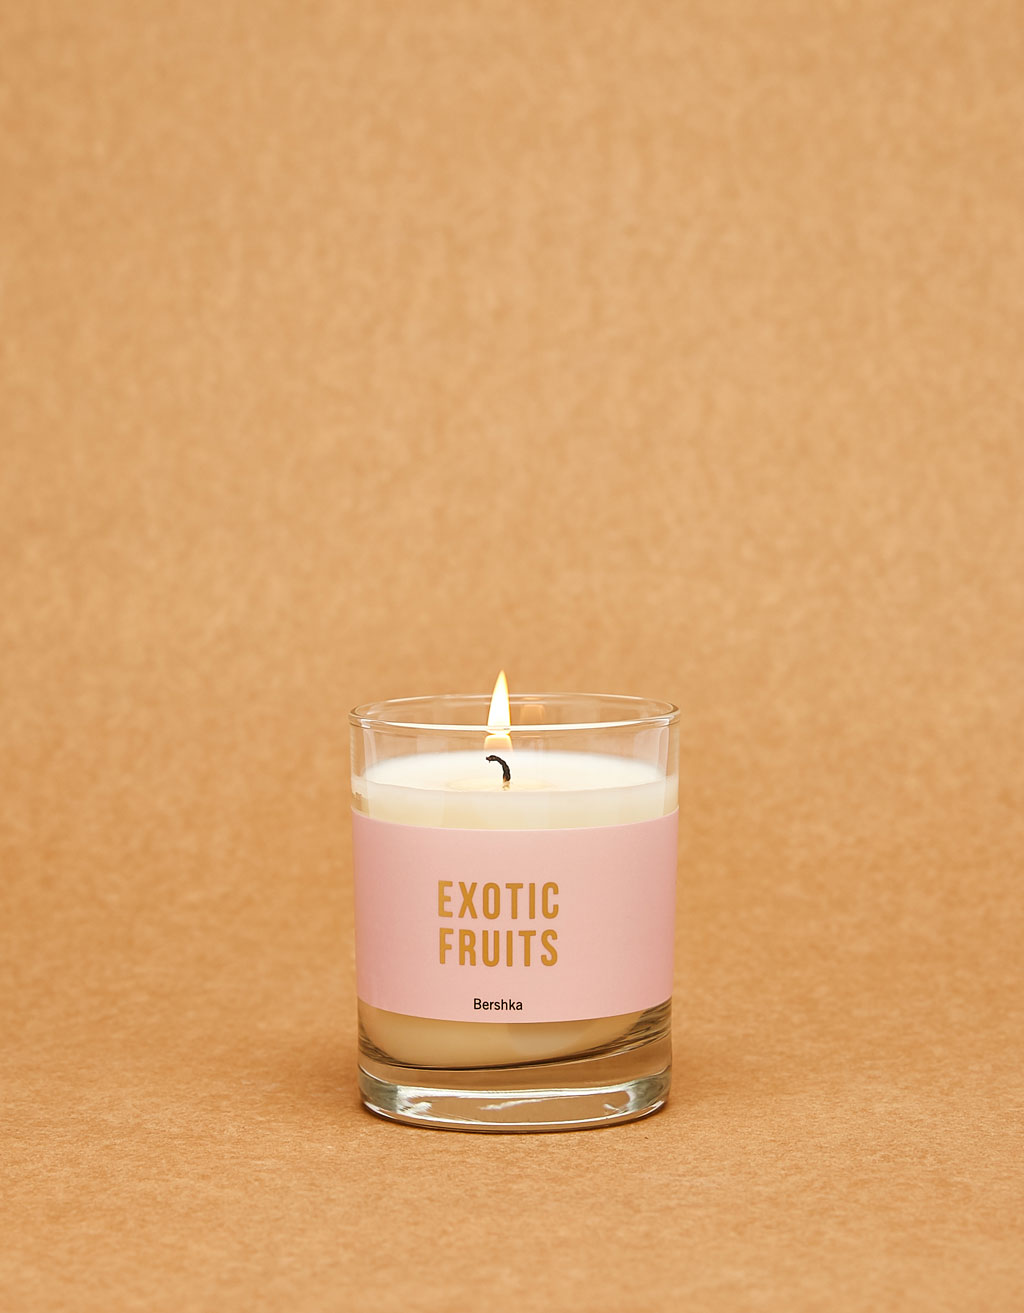 Exotic Fruits scented candle